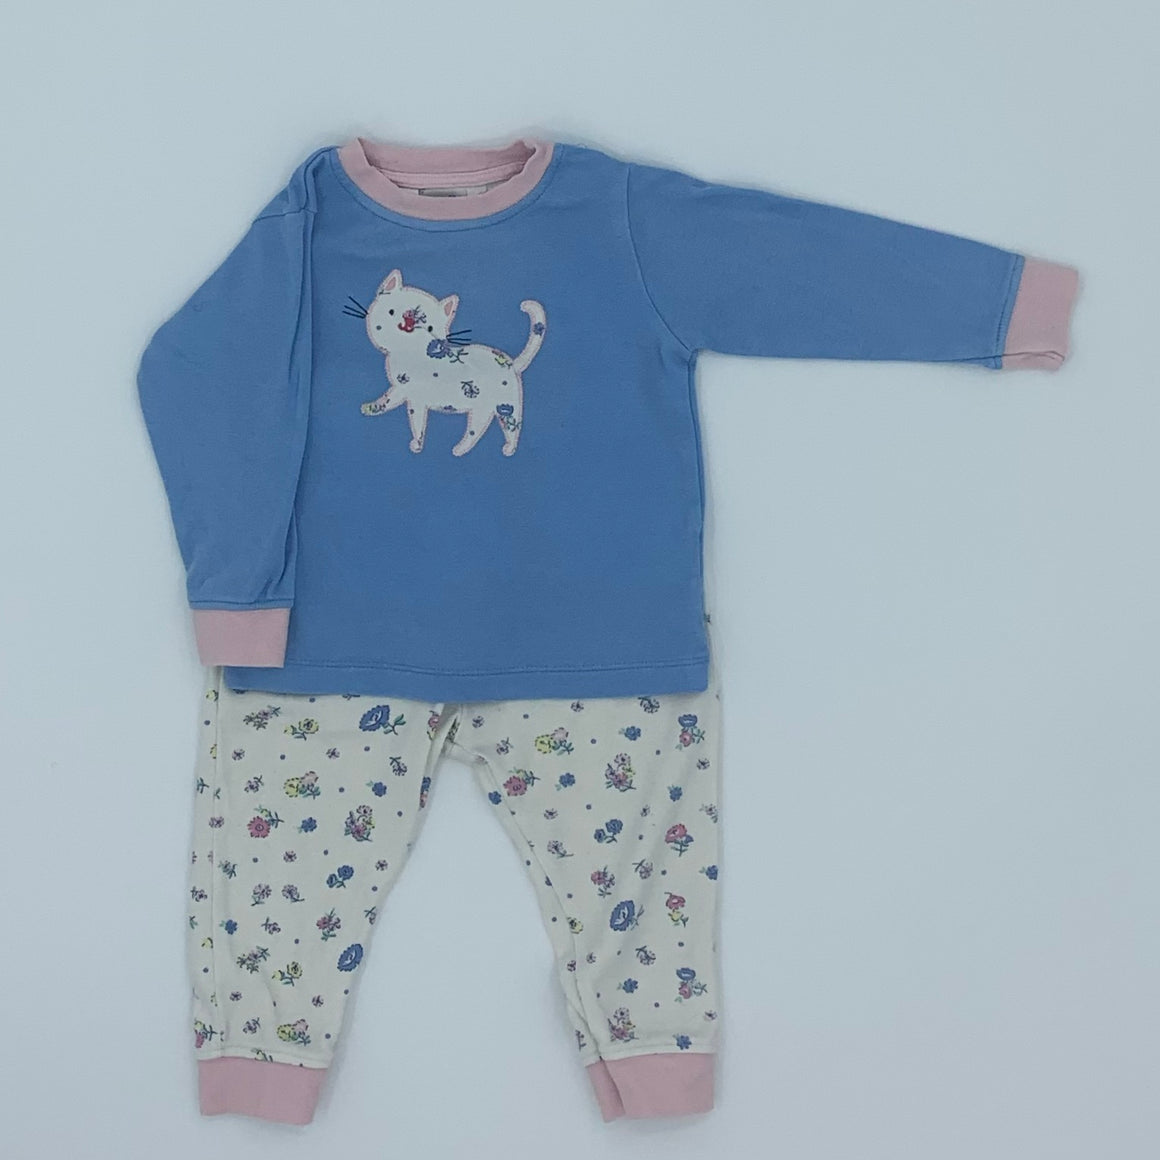 Gently Worn John Lewis cat pyjamas size 6-9 months